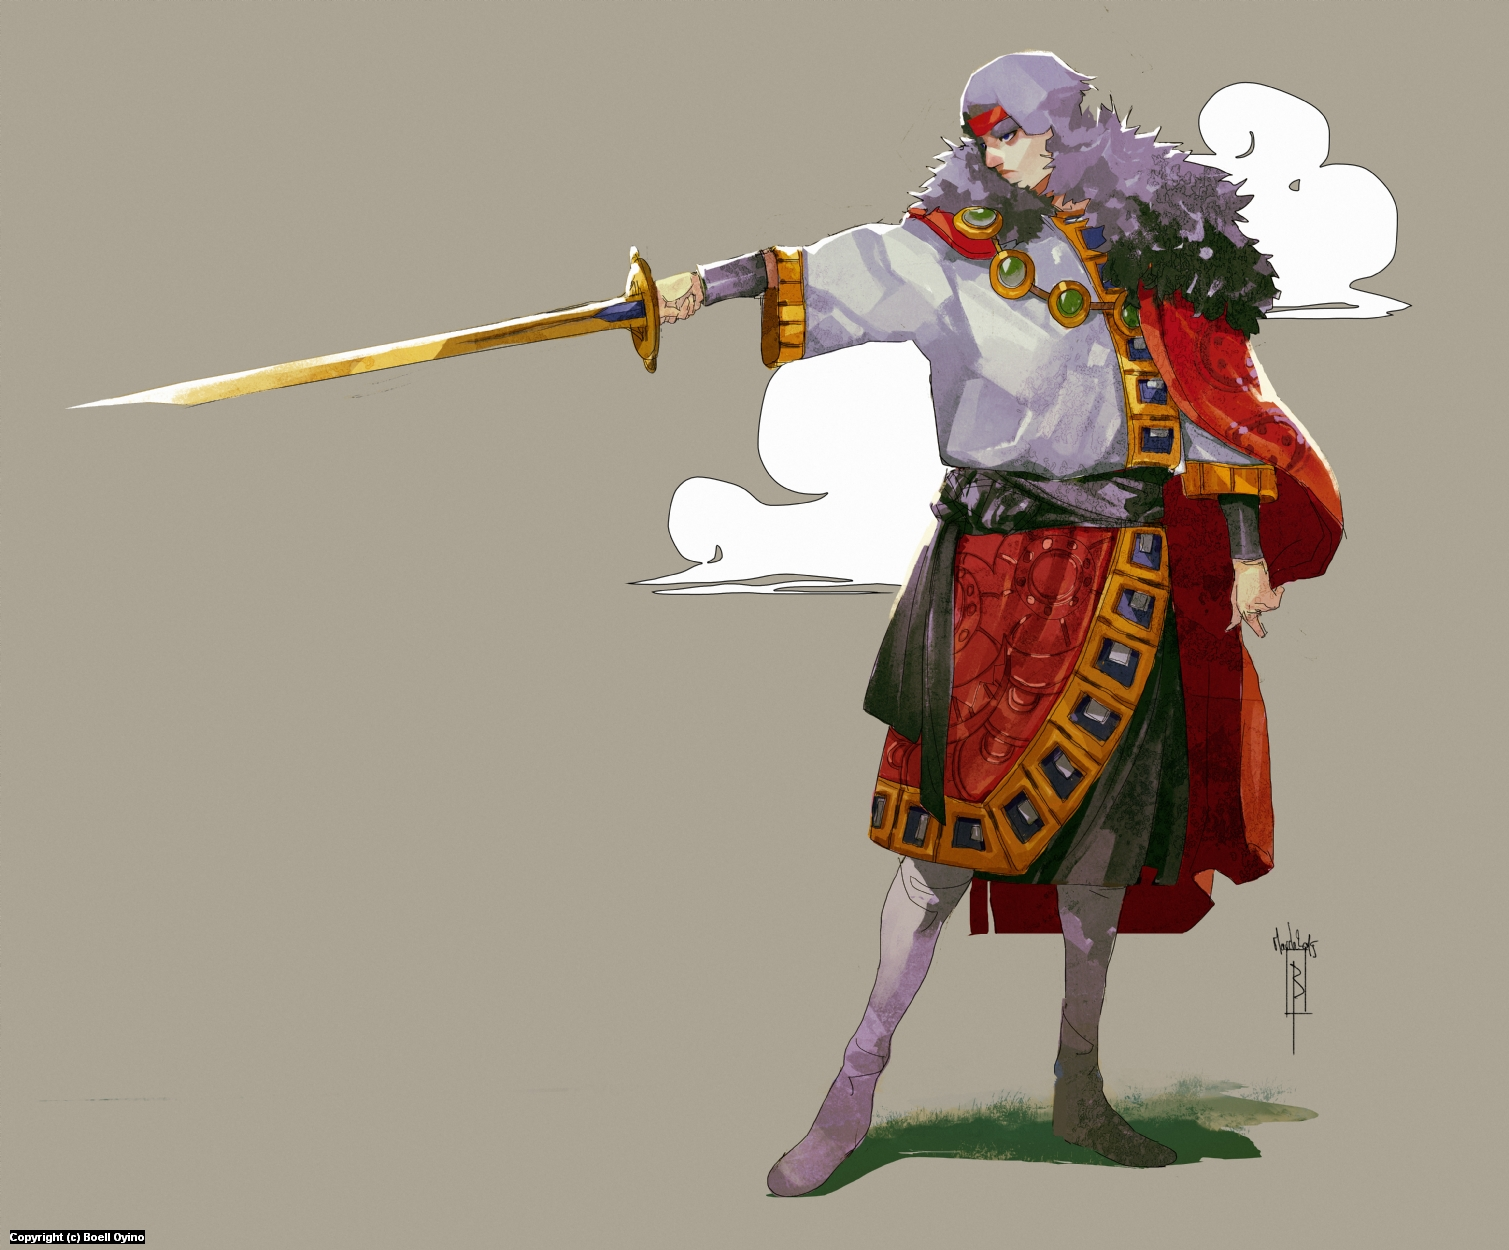 King Tomislav Character design Artwork by Boell Oyino